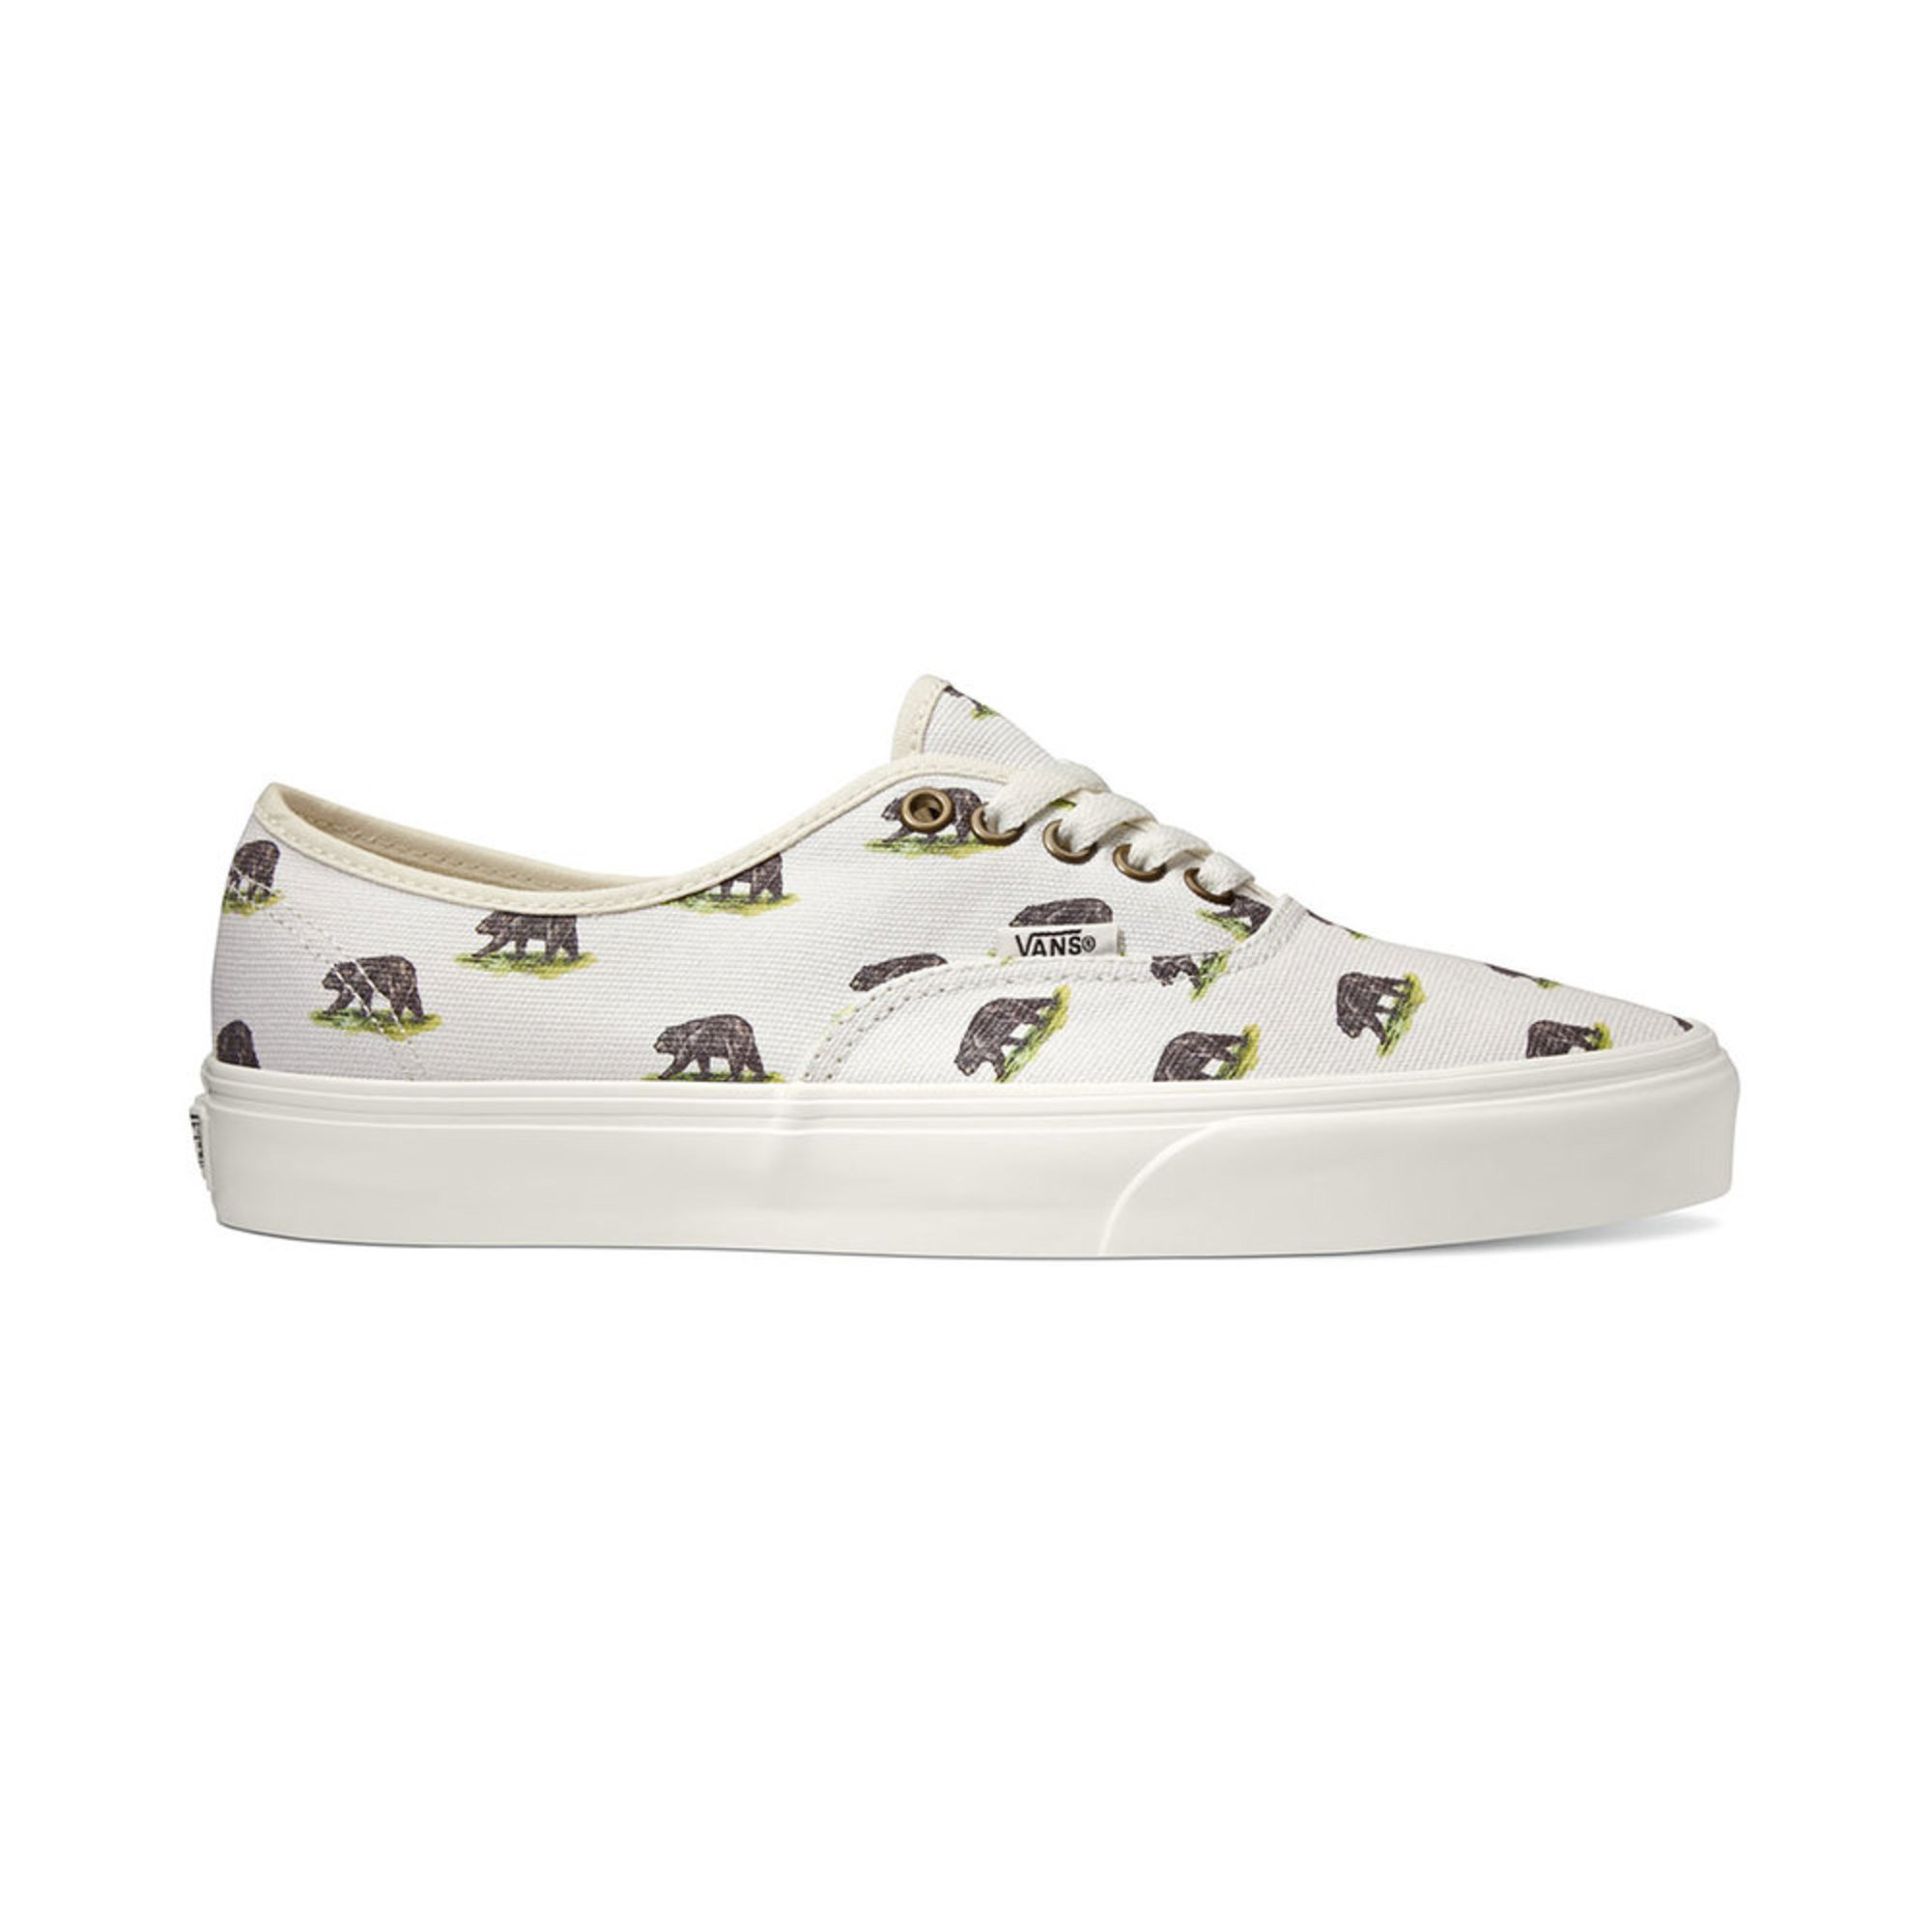 ff1c7bb7ea507 Vans Women's Unisex Authentic Skate Shoe | Women's Skate Shoes ...